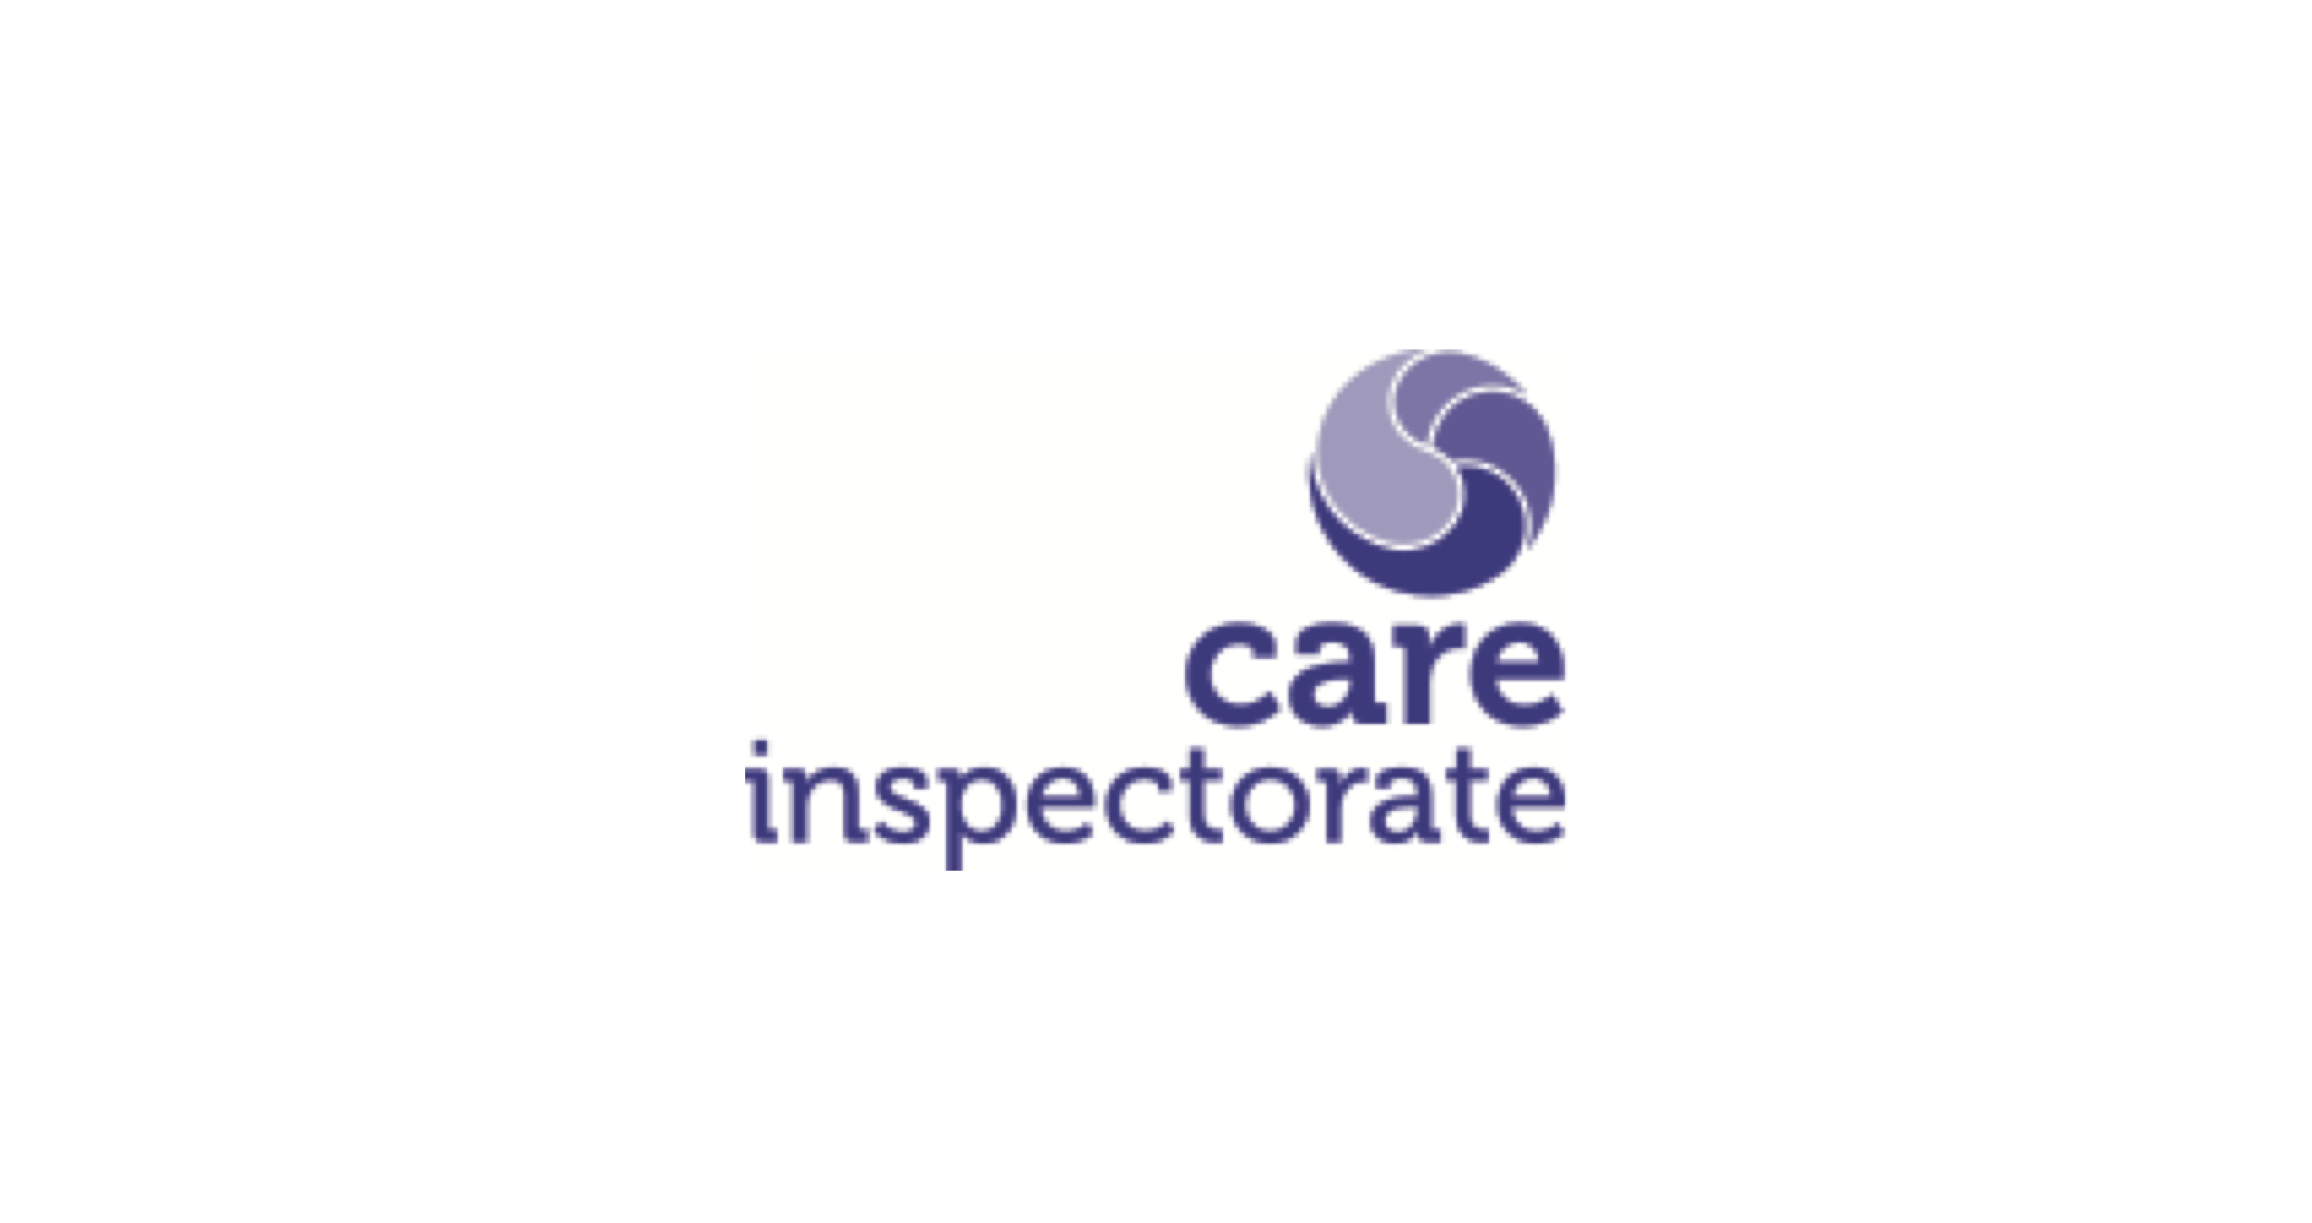 Careline web logo care inspectorate copy